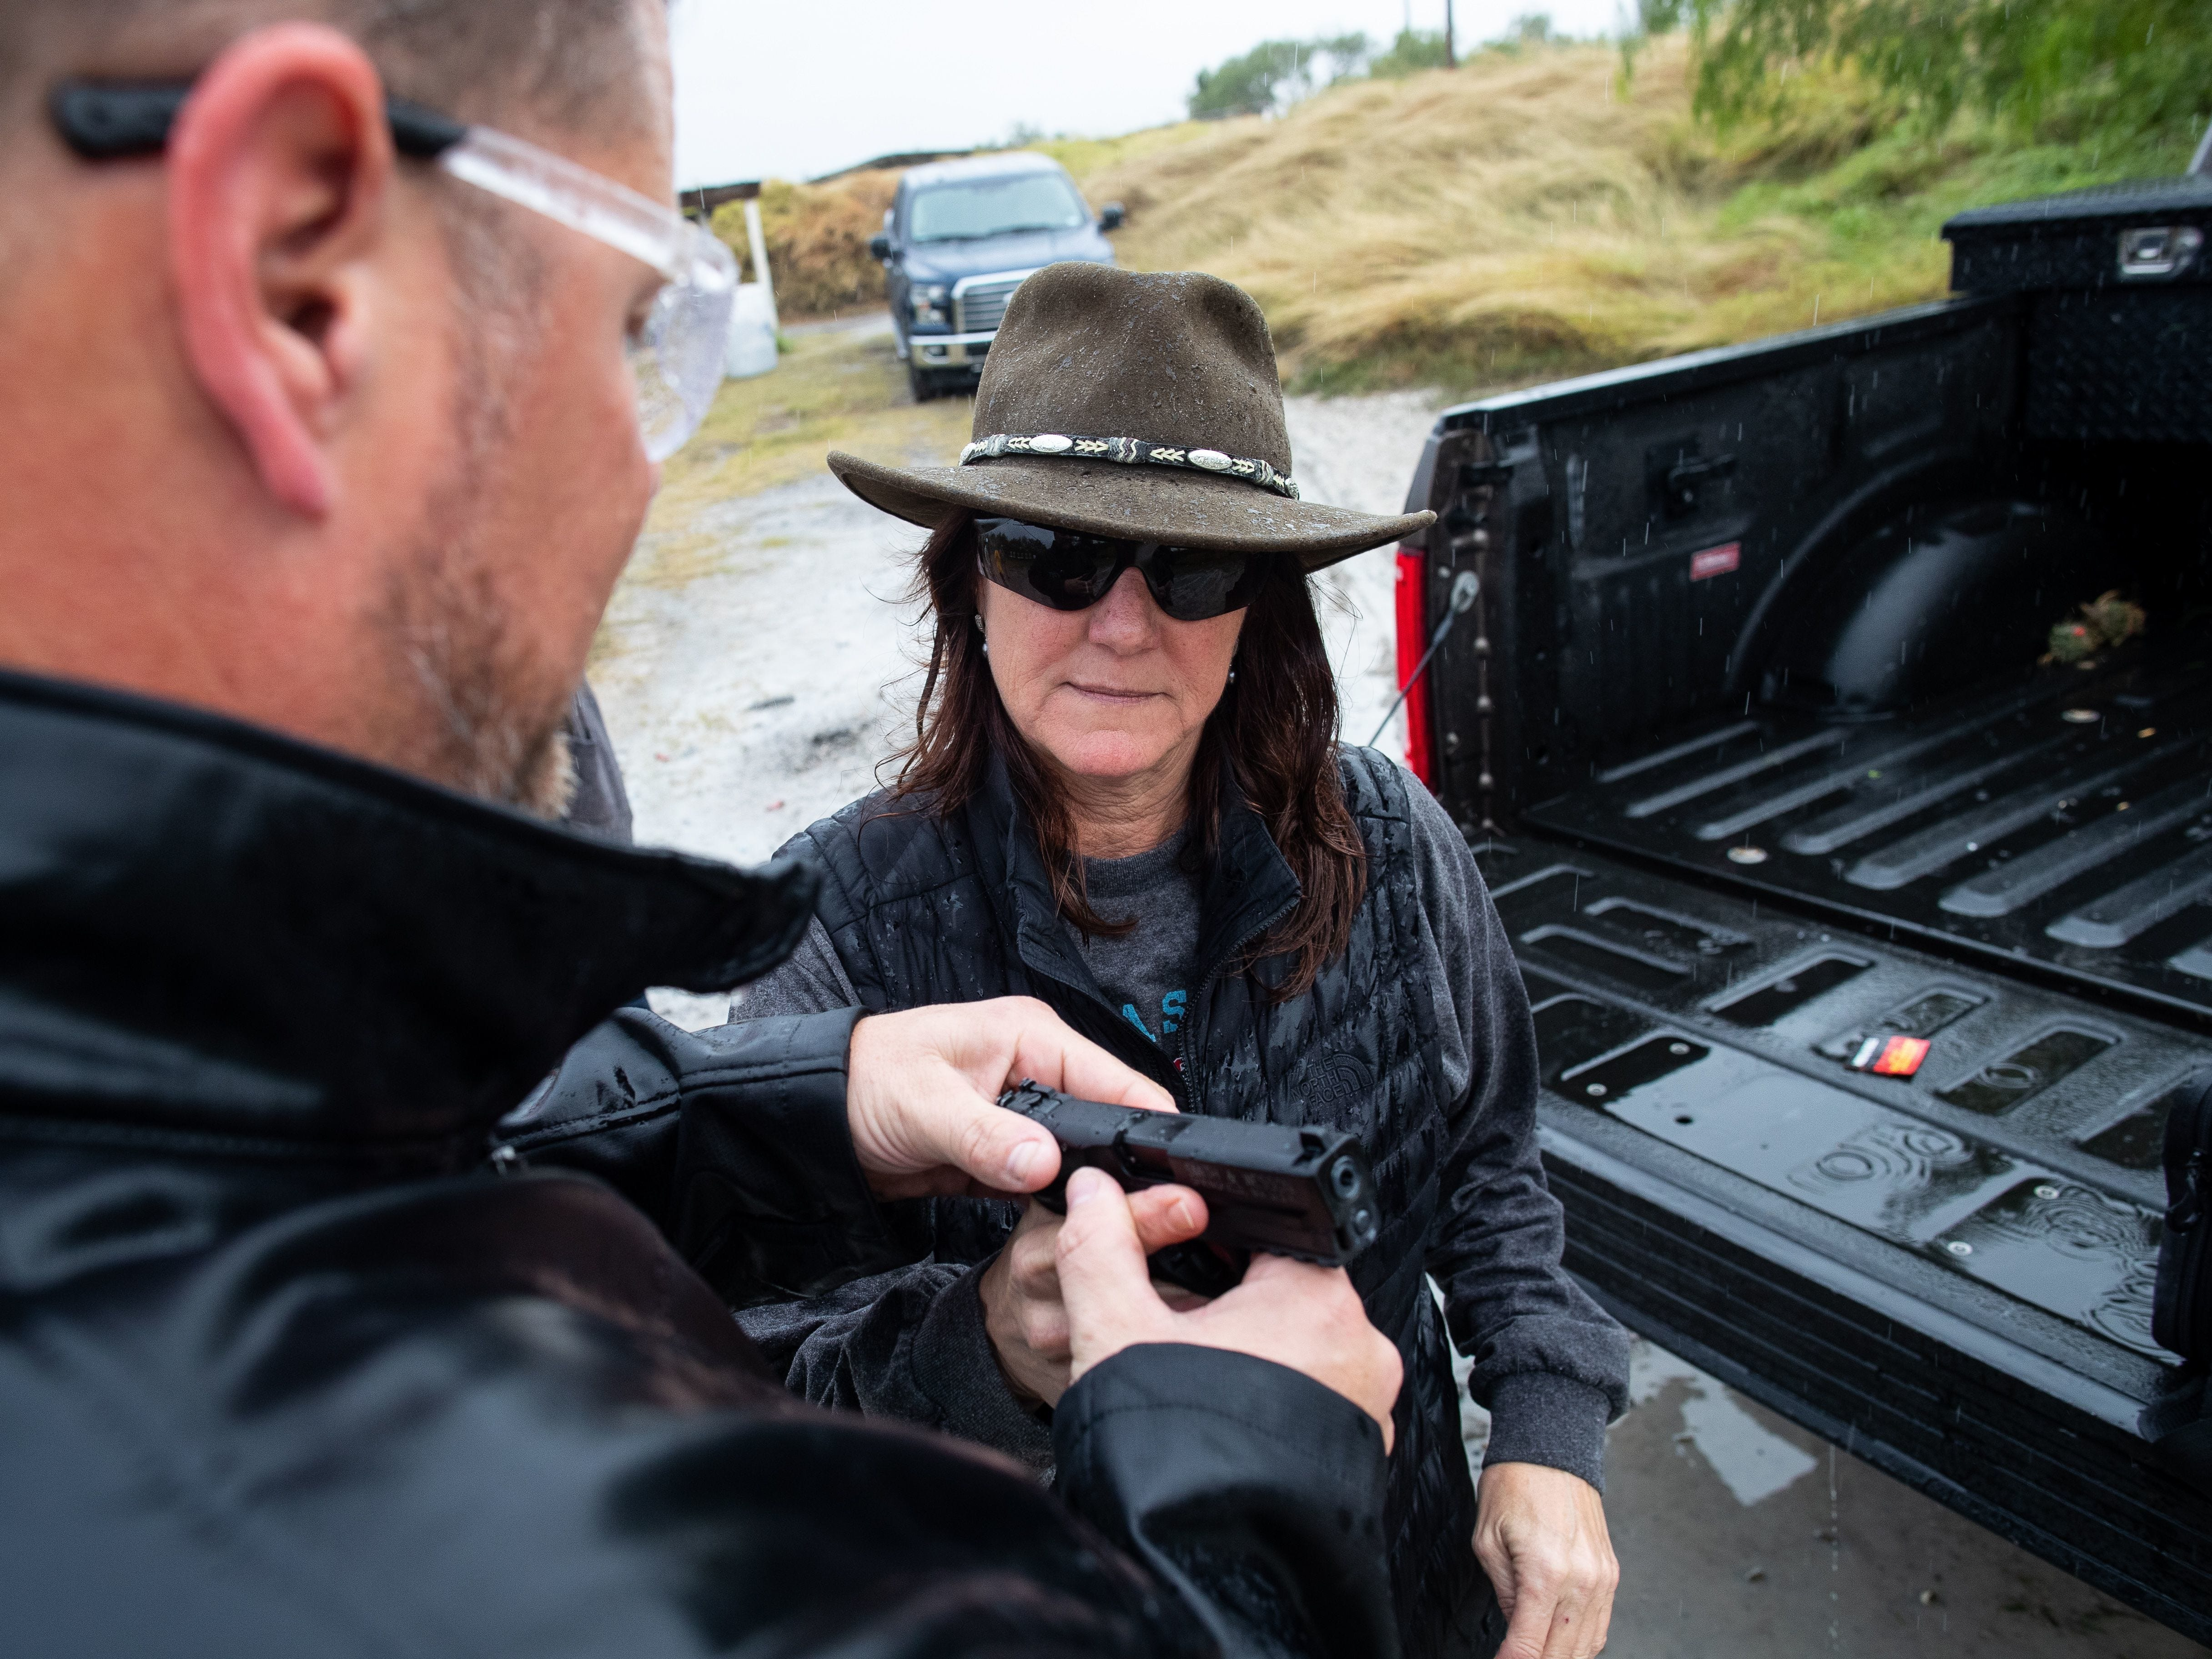 347th District Judge Missy Medary is shown how to use a new firearm as she takes a license to carry class along with other judges and courthouse workers at Starry Shooting Range in 2018. Medary is the first woman to serve as Presiding Judge of the Fifth Administrative Judicial Region.